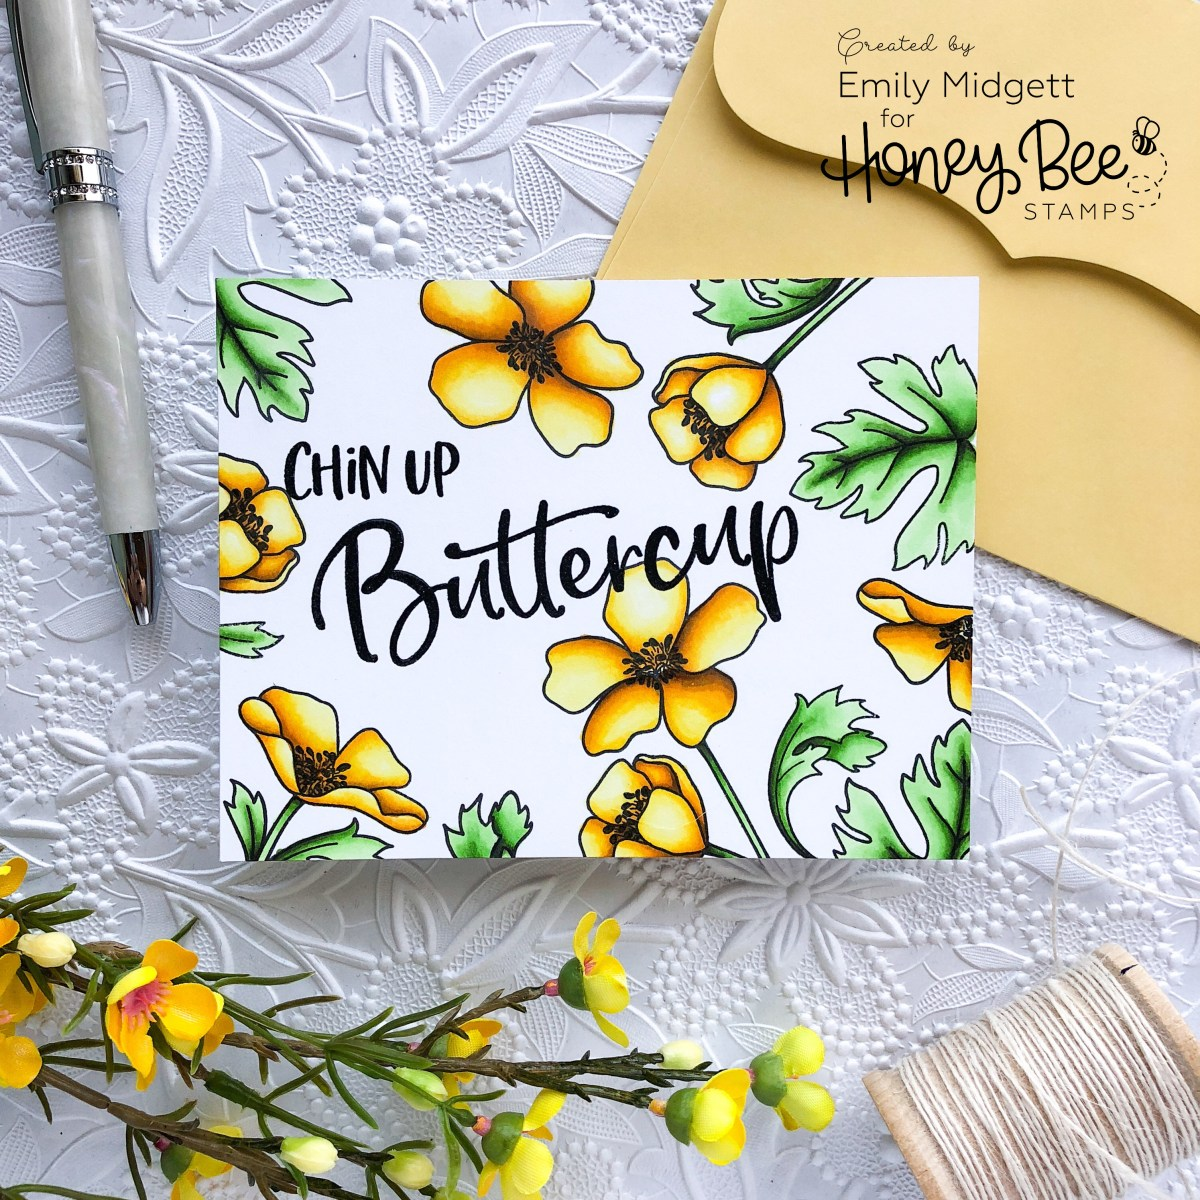 Honey Bee Stamps Bee Bold Release Blog Hop!